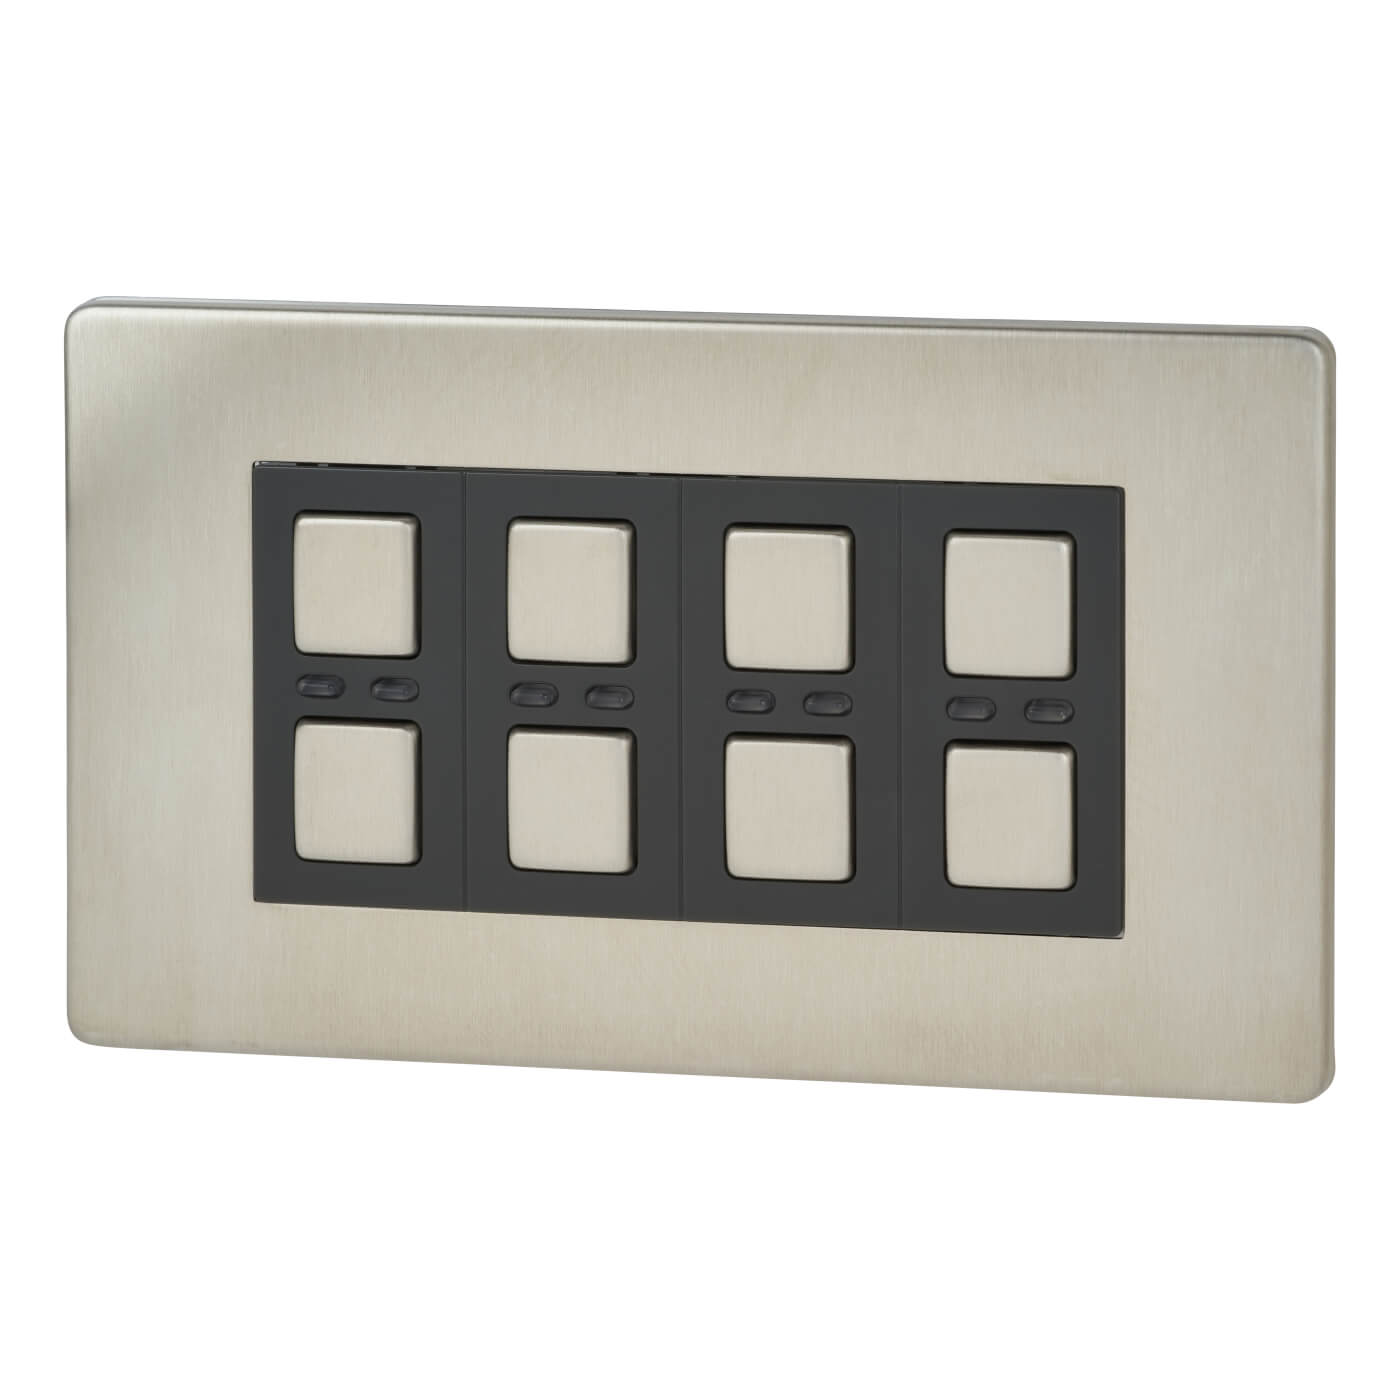 Lightwaverf 4 Gang 2 Way Generation 1 Dimmer Switch Stainless With 3 Core Cable Back